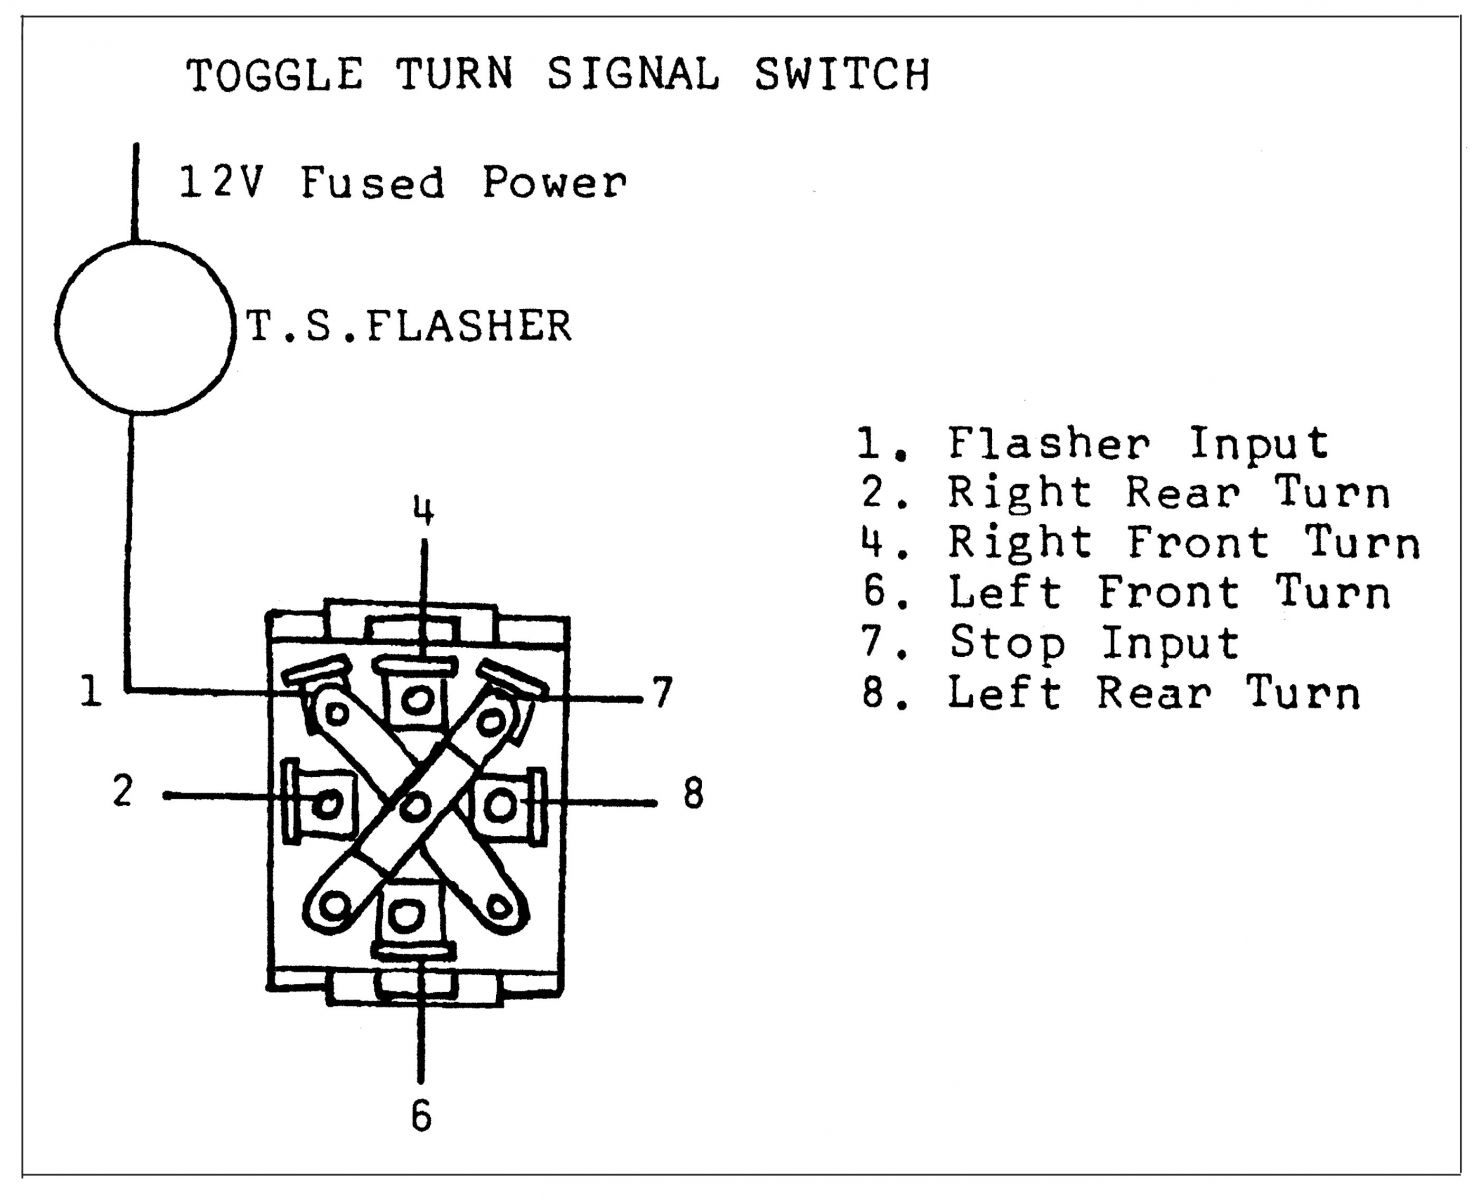 hight resolution of my vehicle has a gm style fuse block with the flasher circuit included so i just